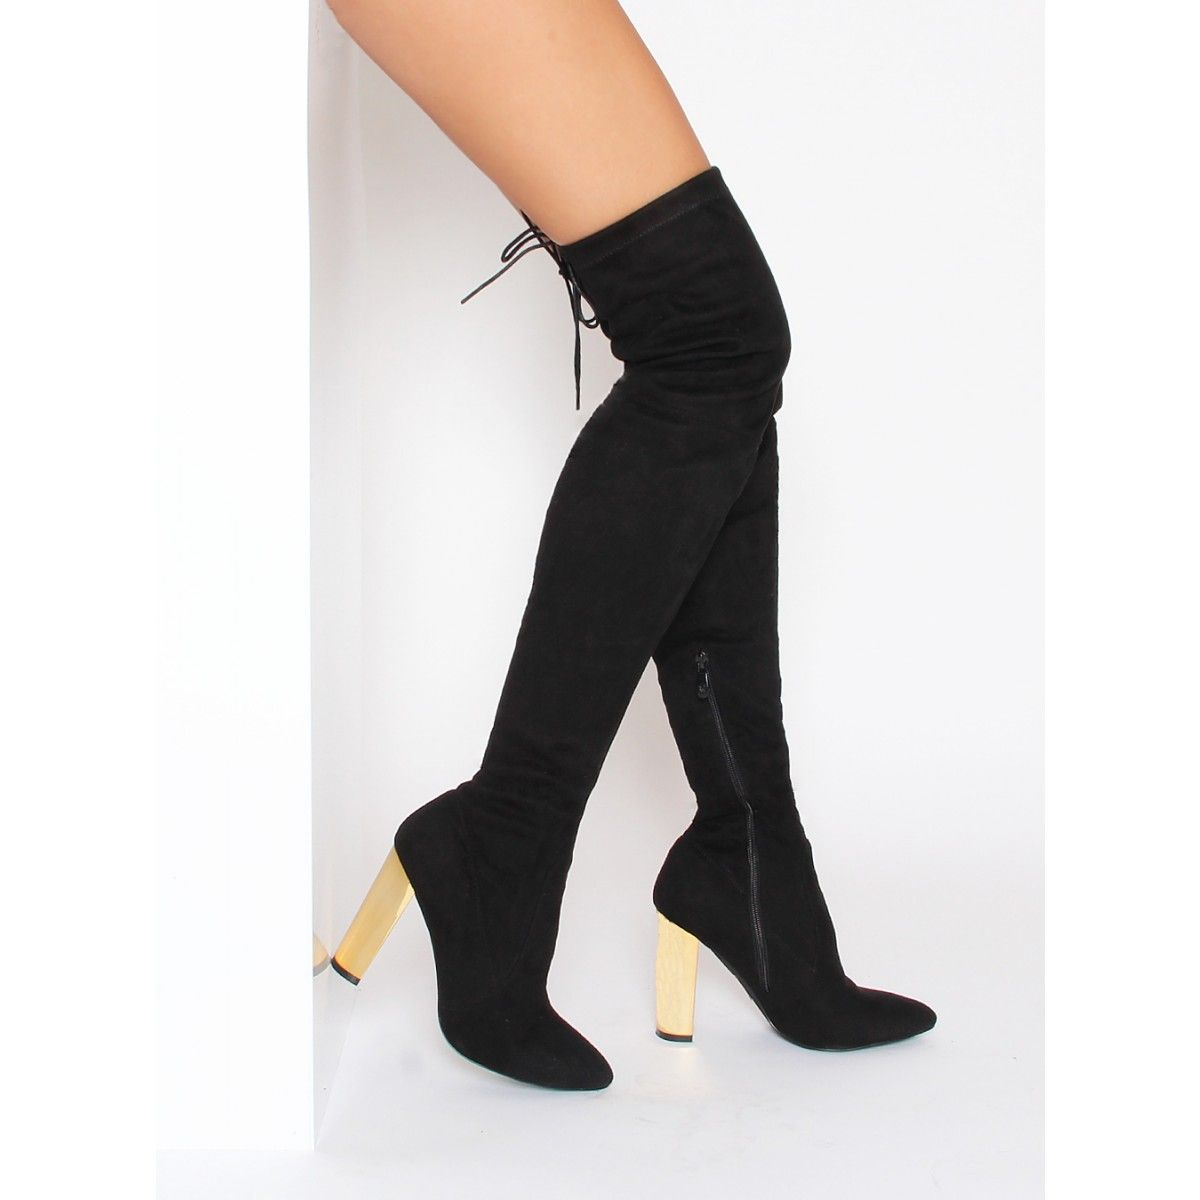 Lottie Black Suede Gold Block Heel Thigh High Boots : Simmi Shoes ...